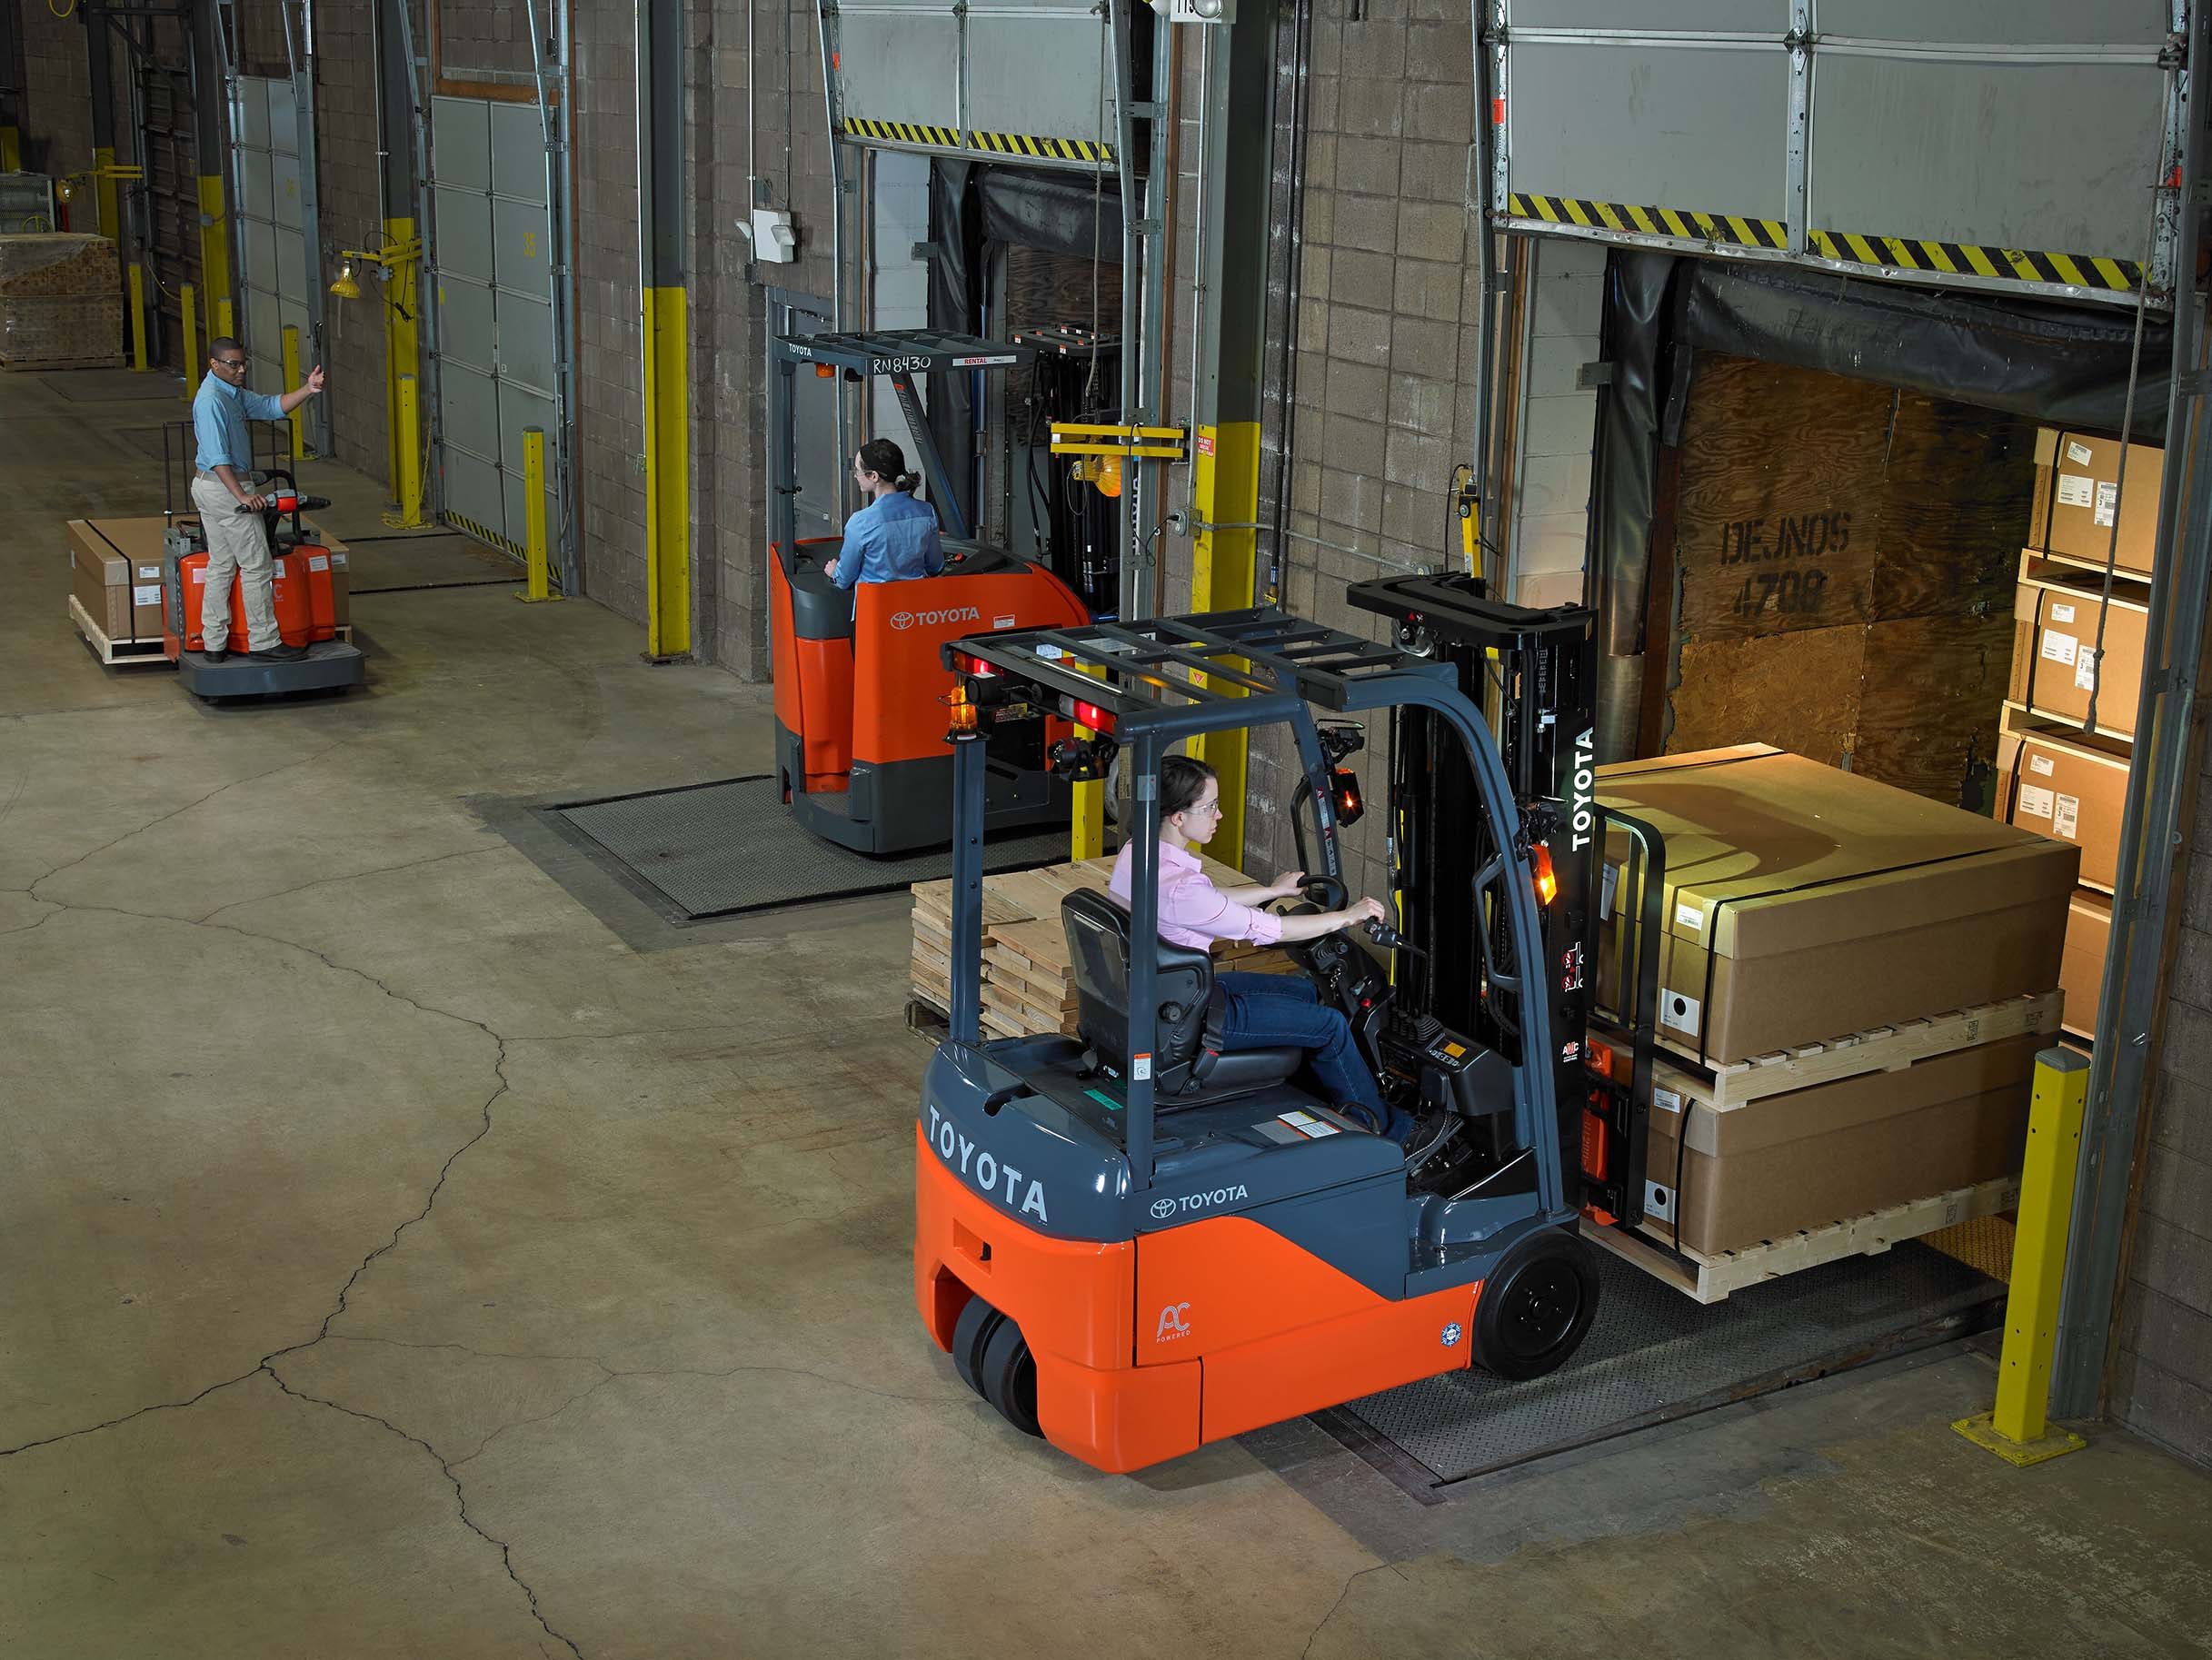 History of the Forklift: How Well Do You Know It?